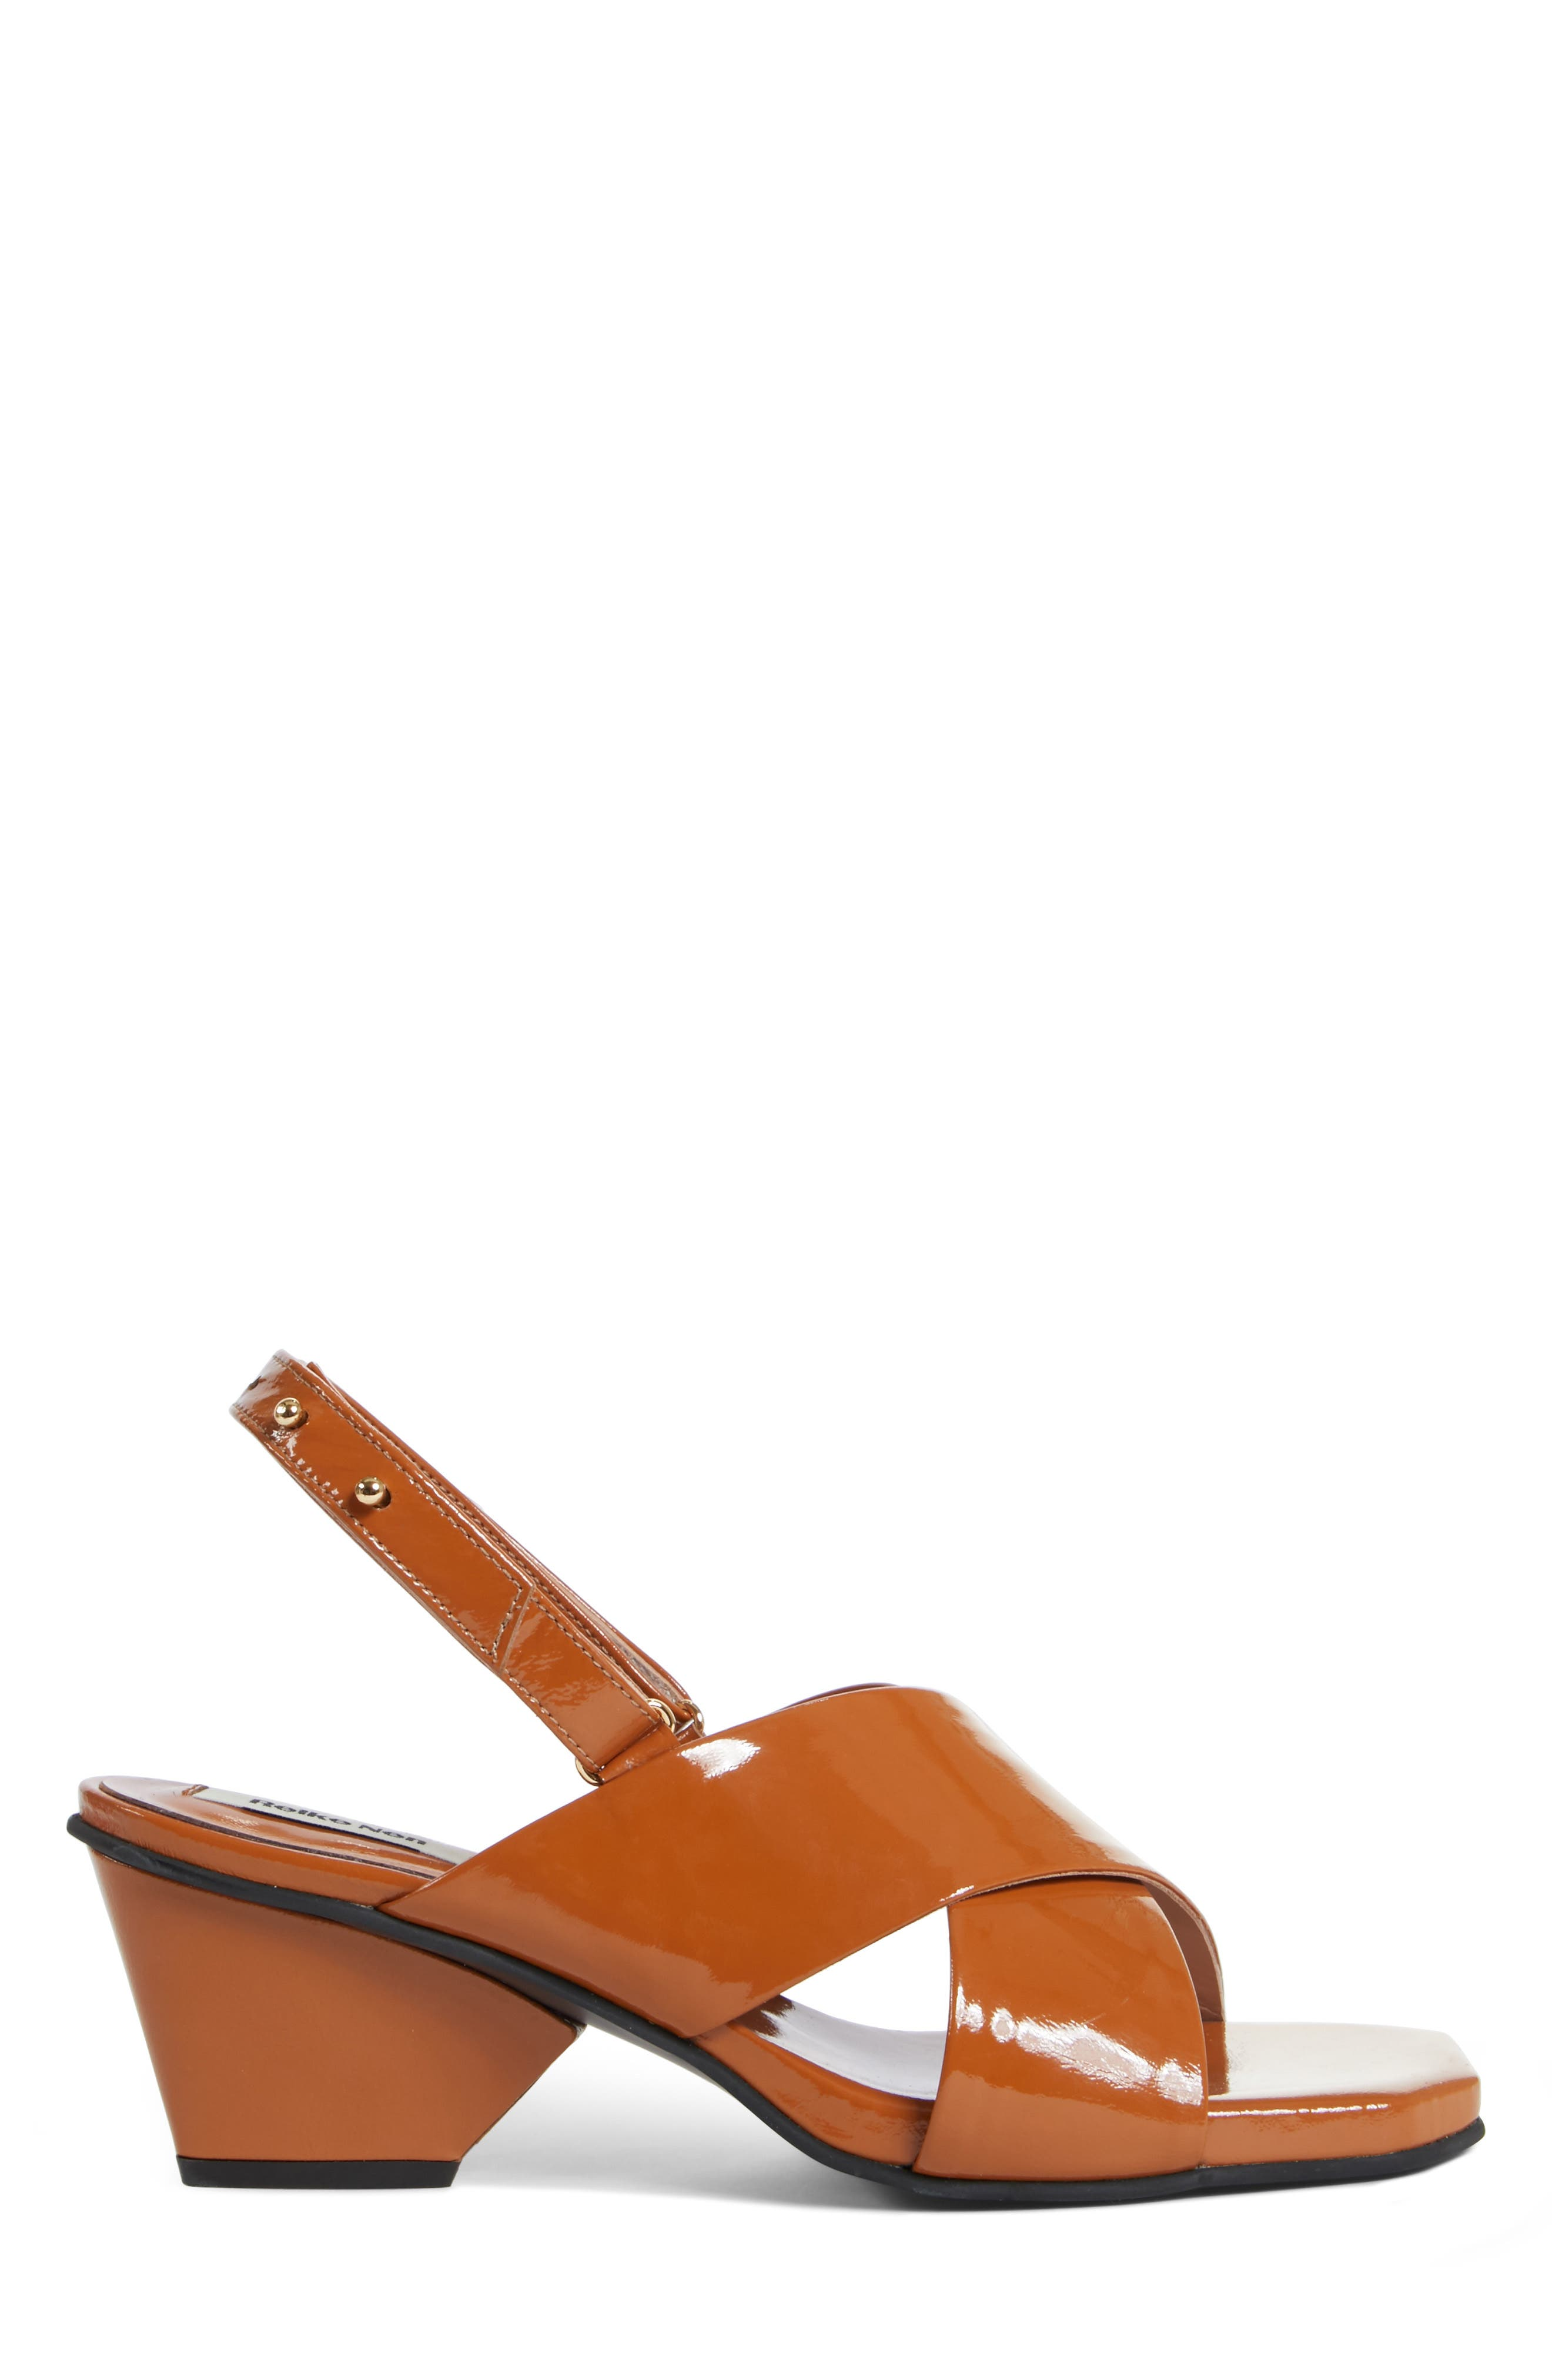 Slingback Sandal,                             Alternate thumbnail 3, color,